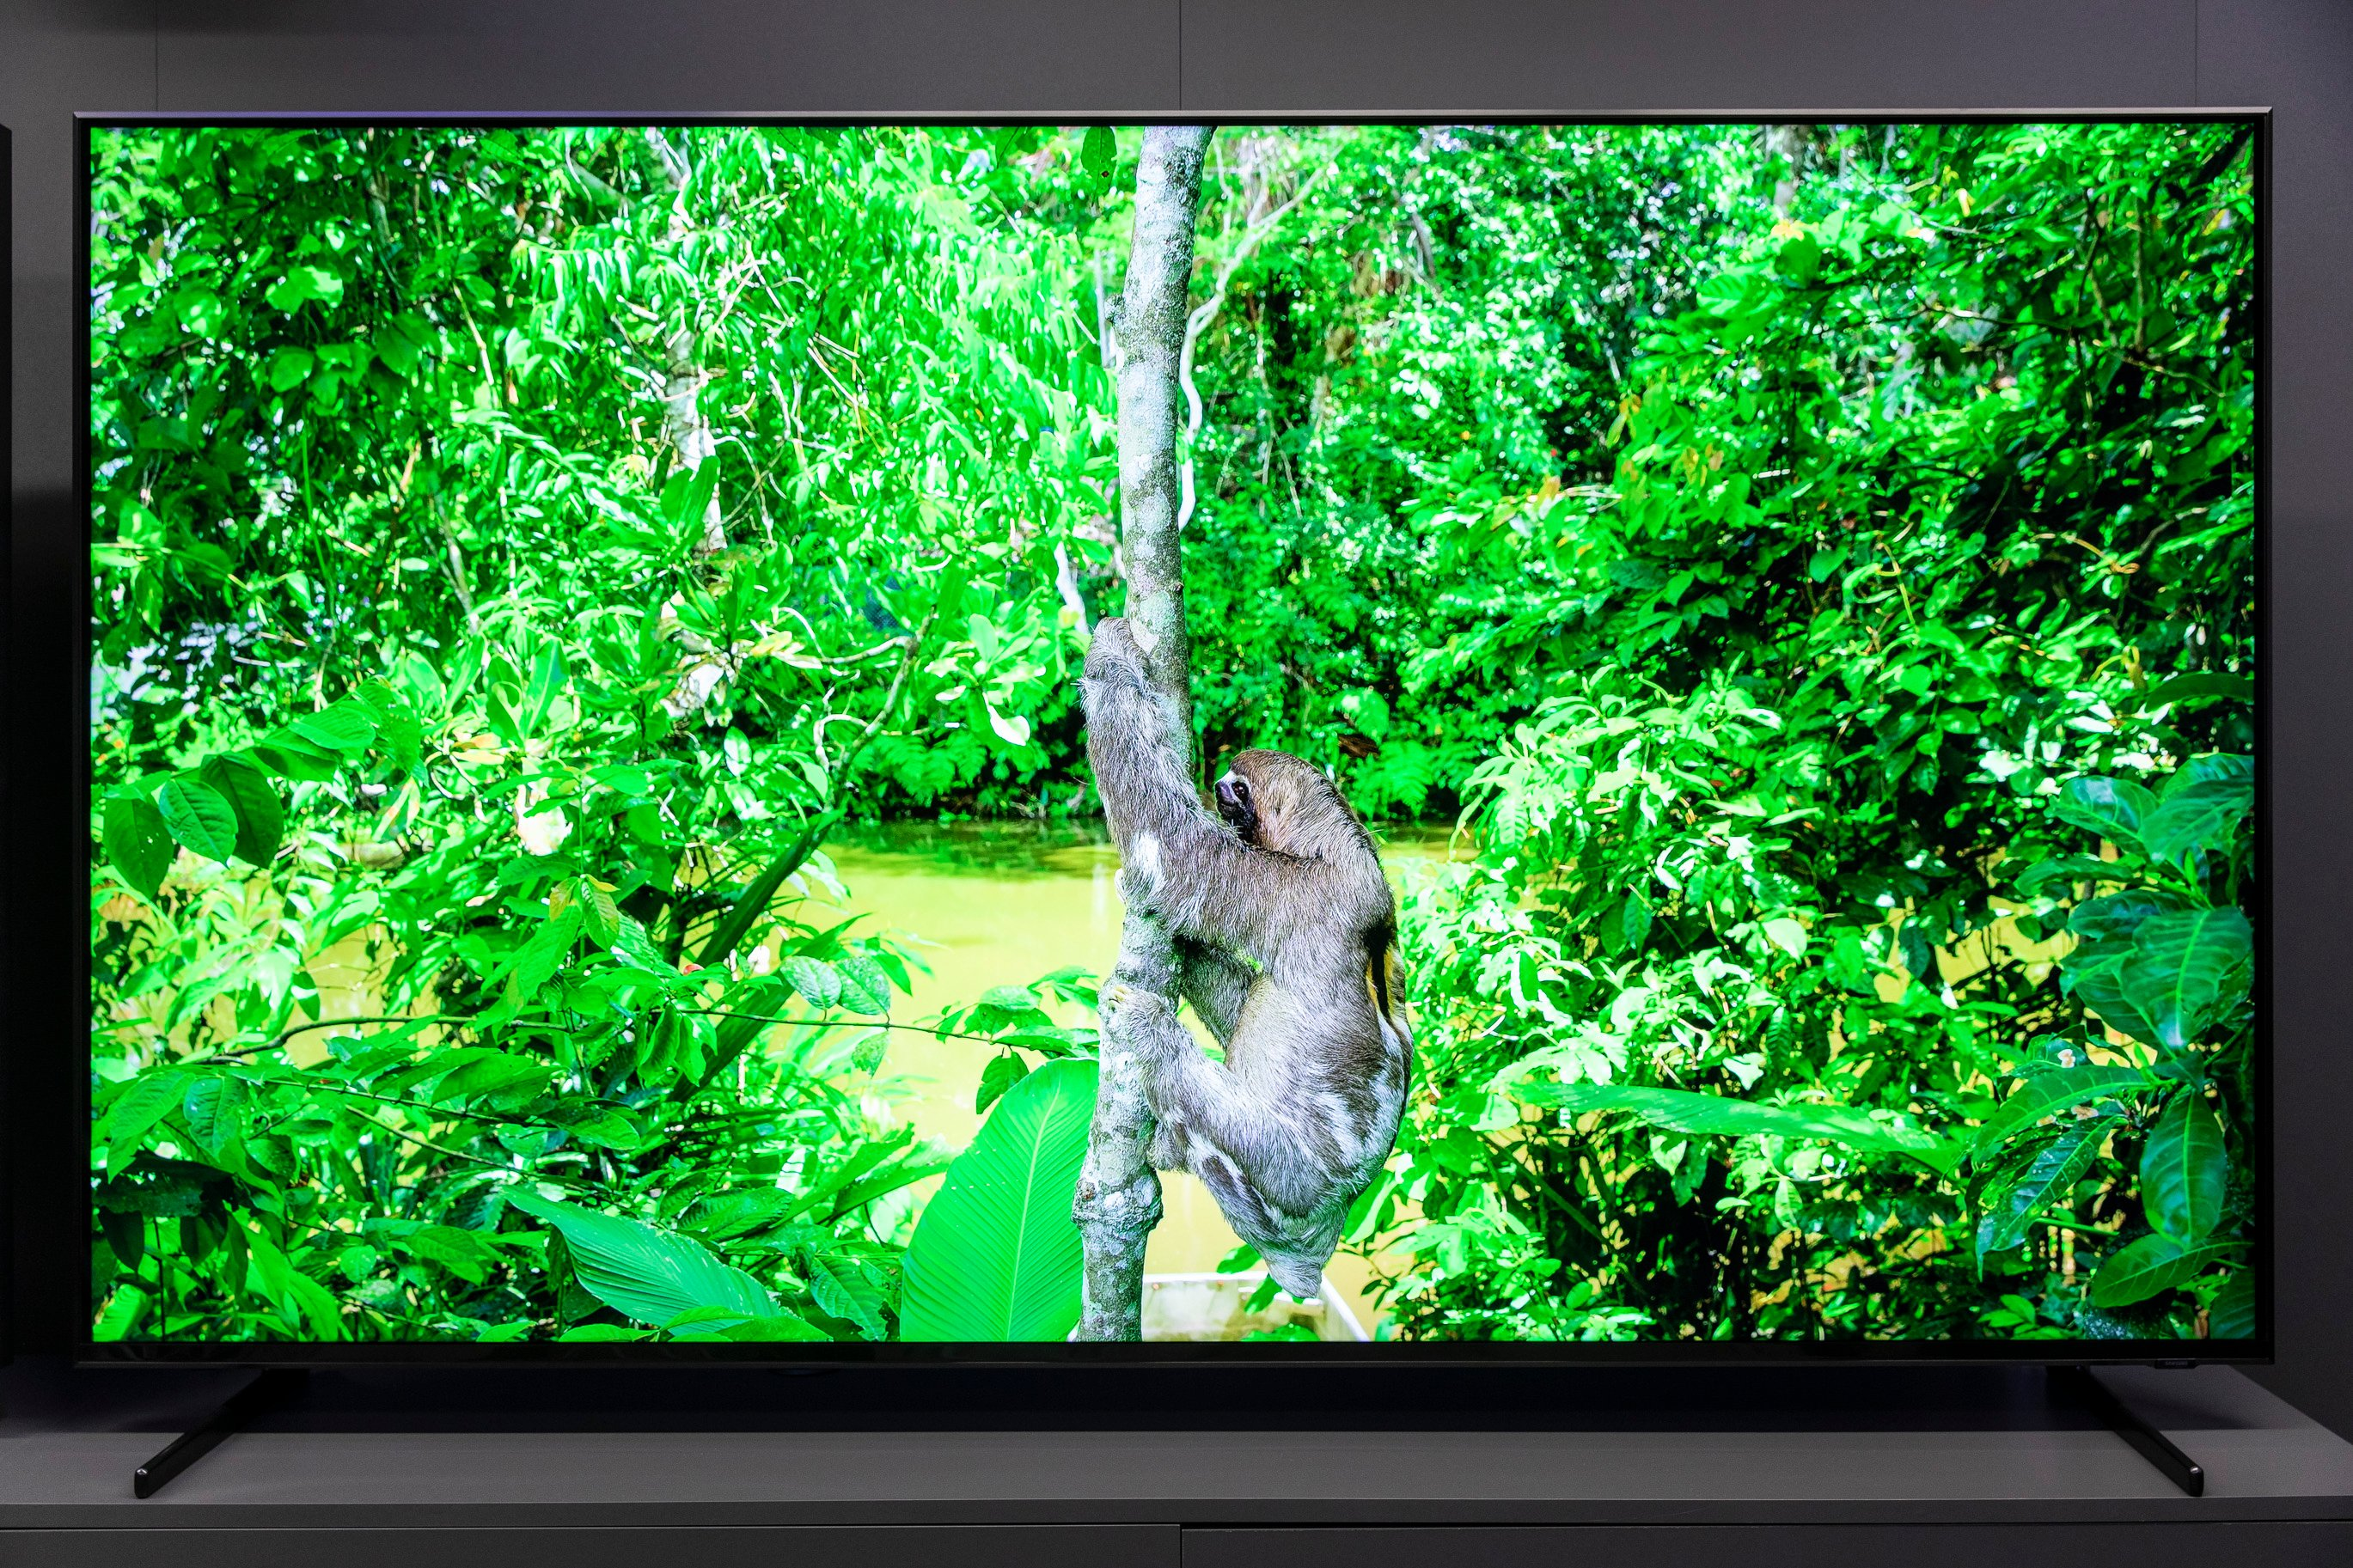 Samsung Q900R review: 'Eyes on' with Samsung's monster 8K TV